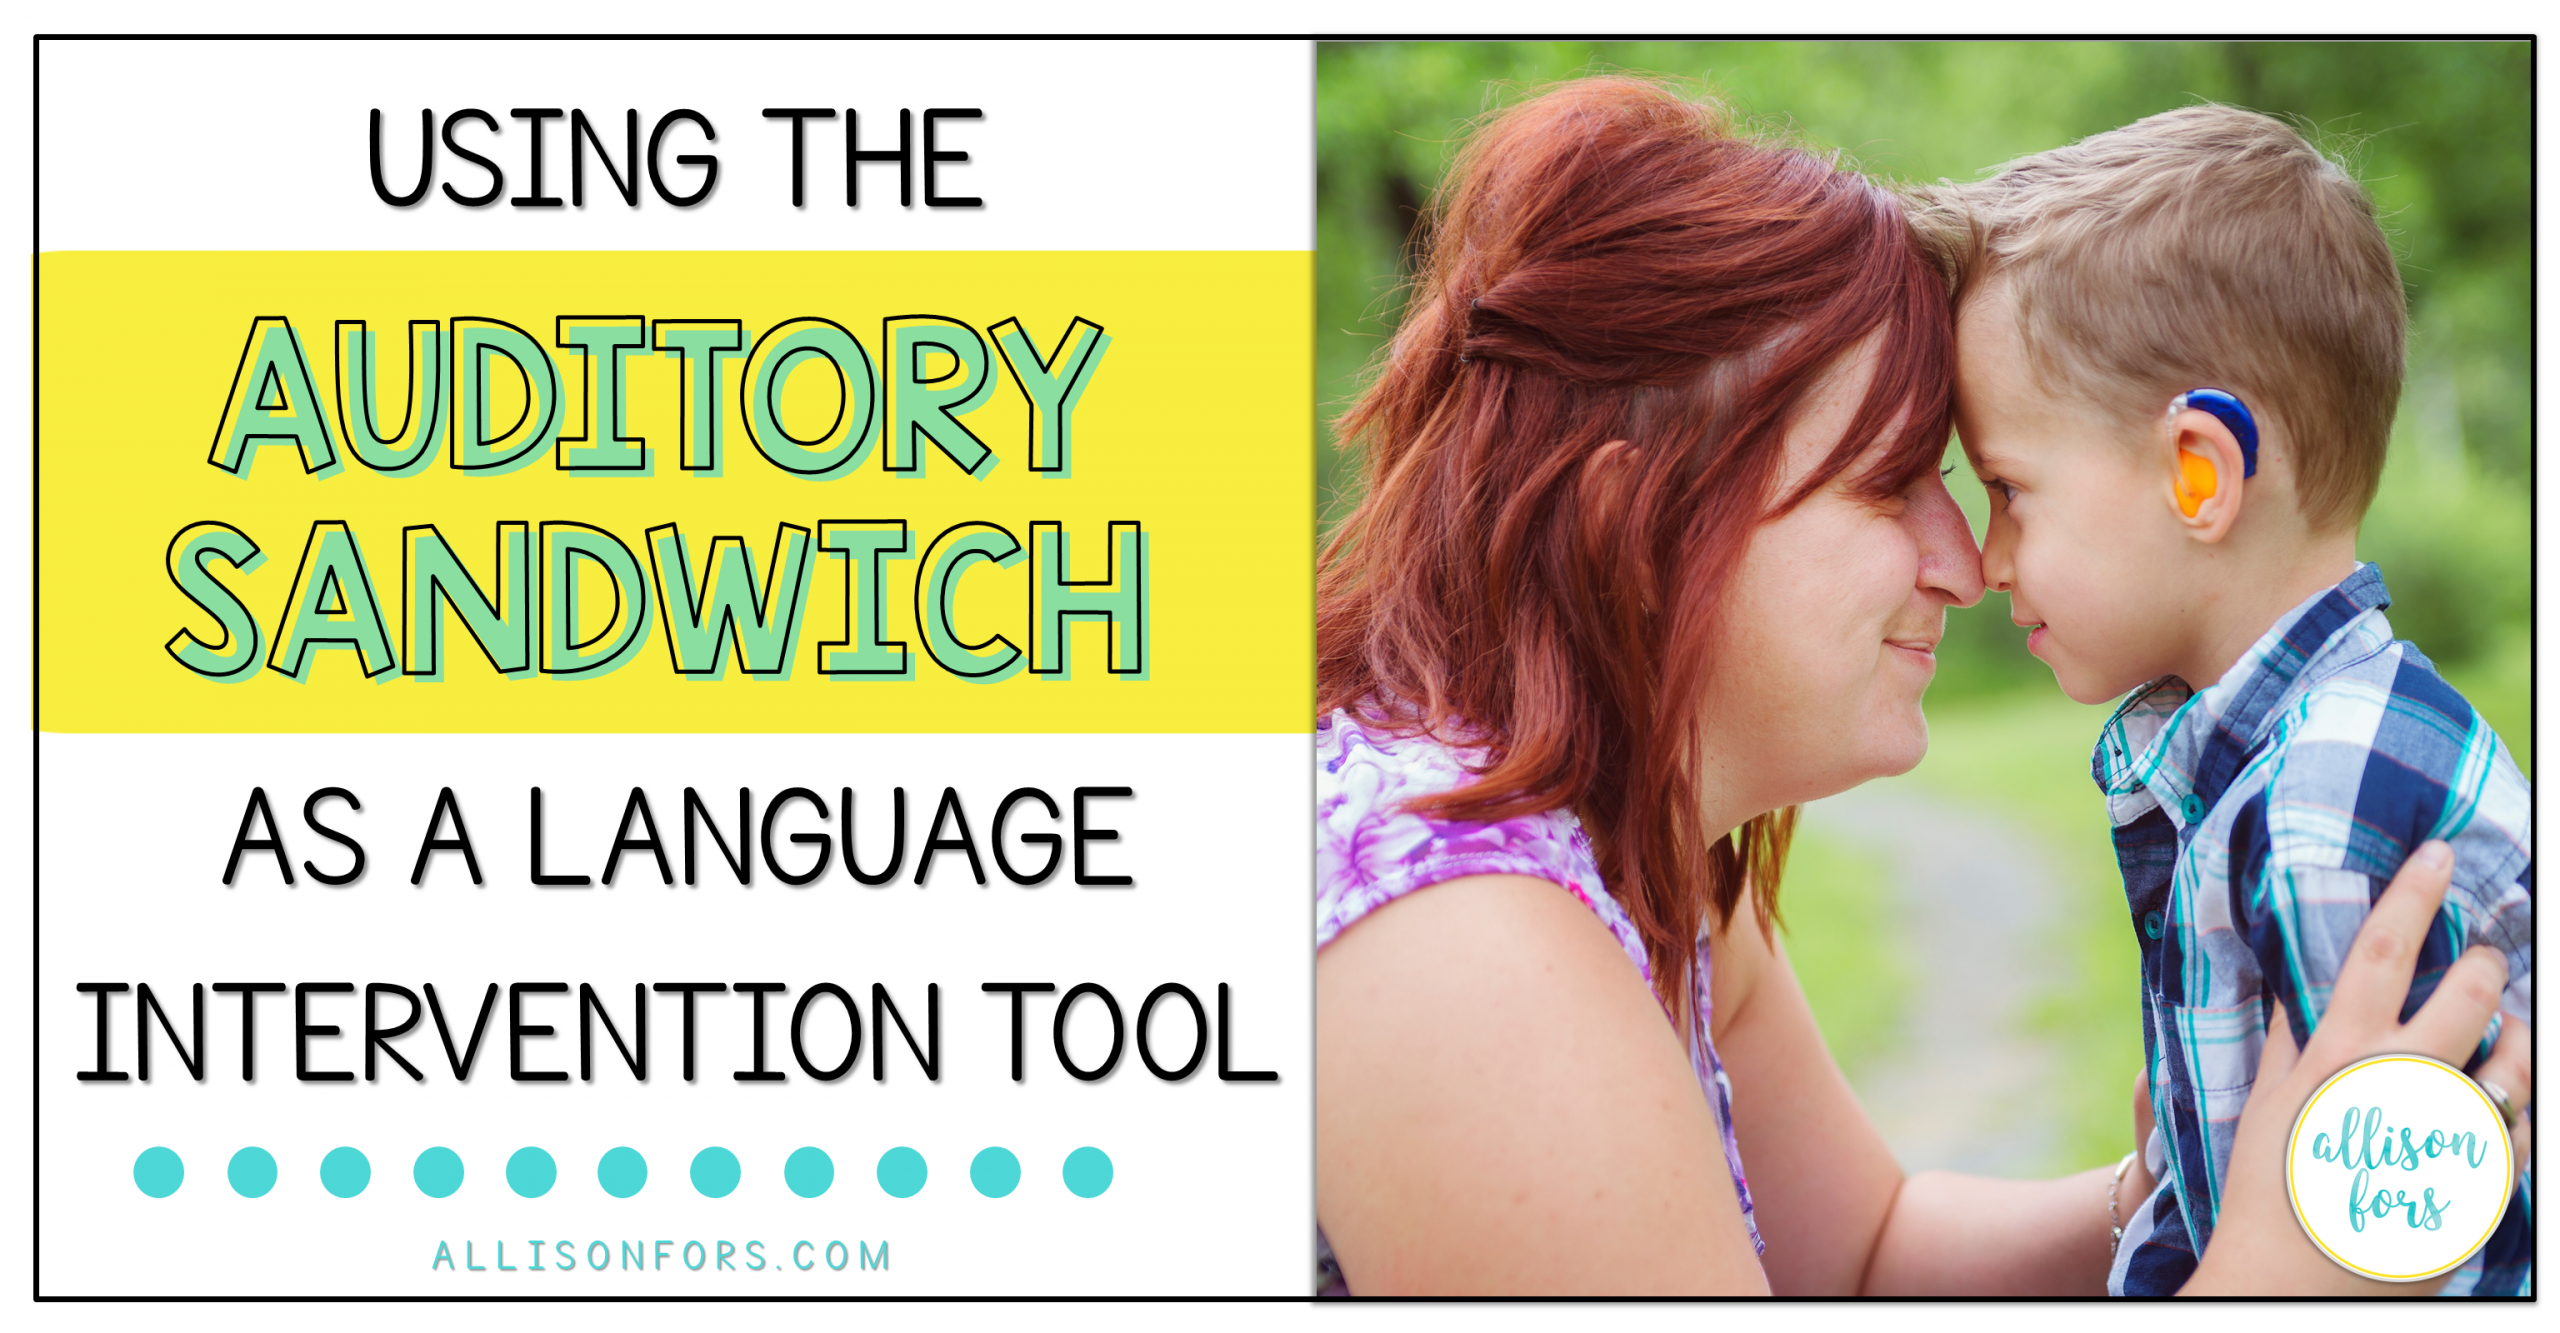 Using the Auditory Sandwich as a Language Intervention Tool